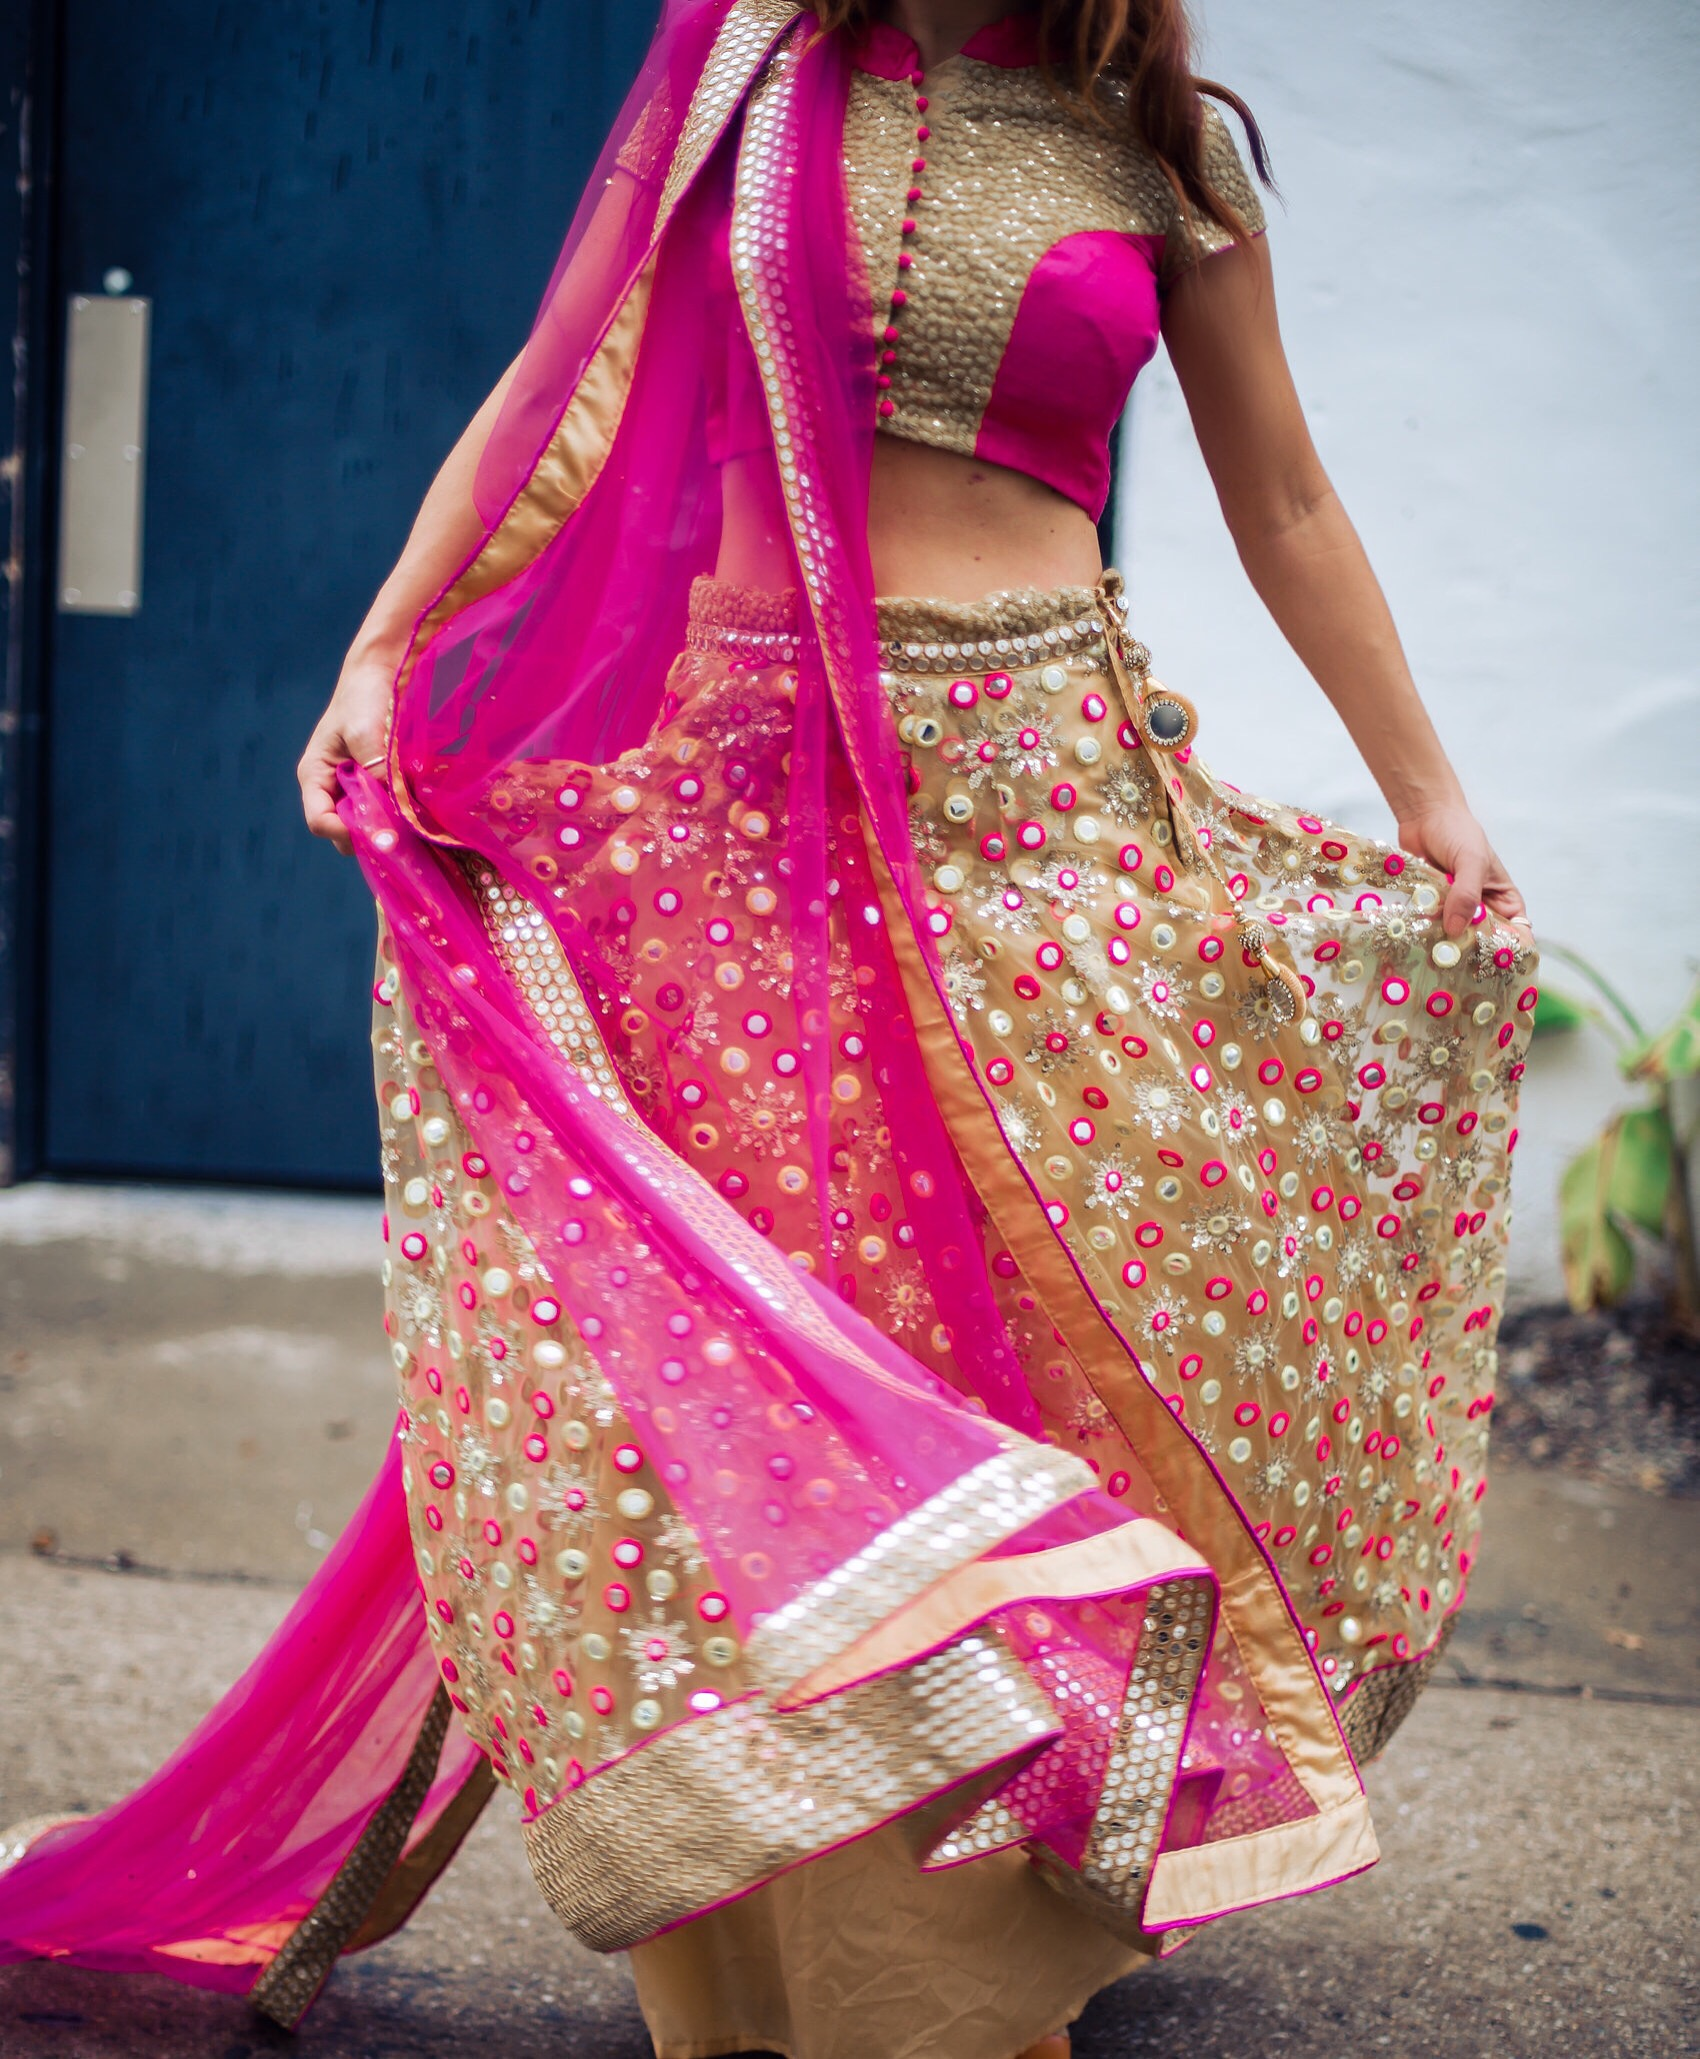 pastels by aj custom-made indian wedding outfit dress